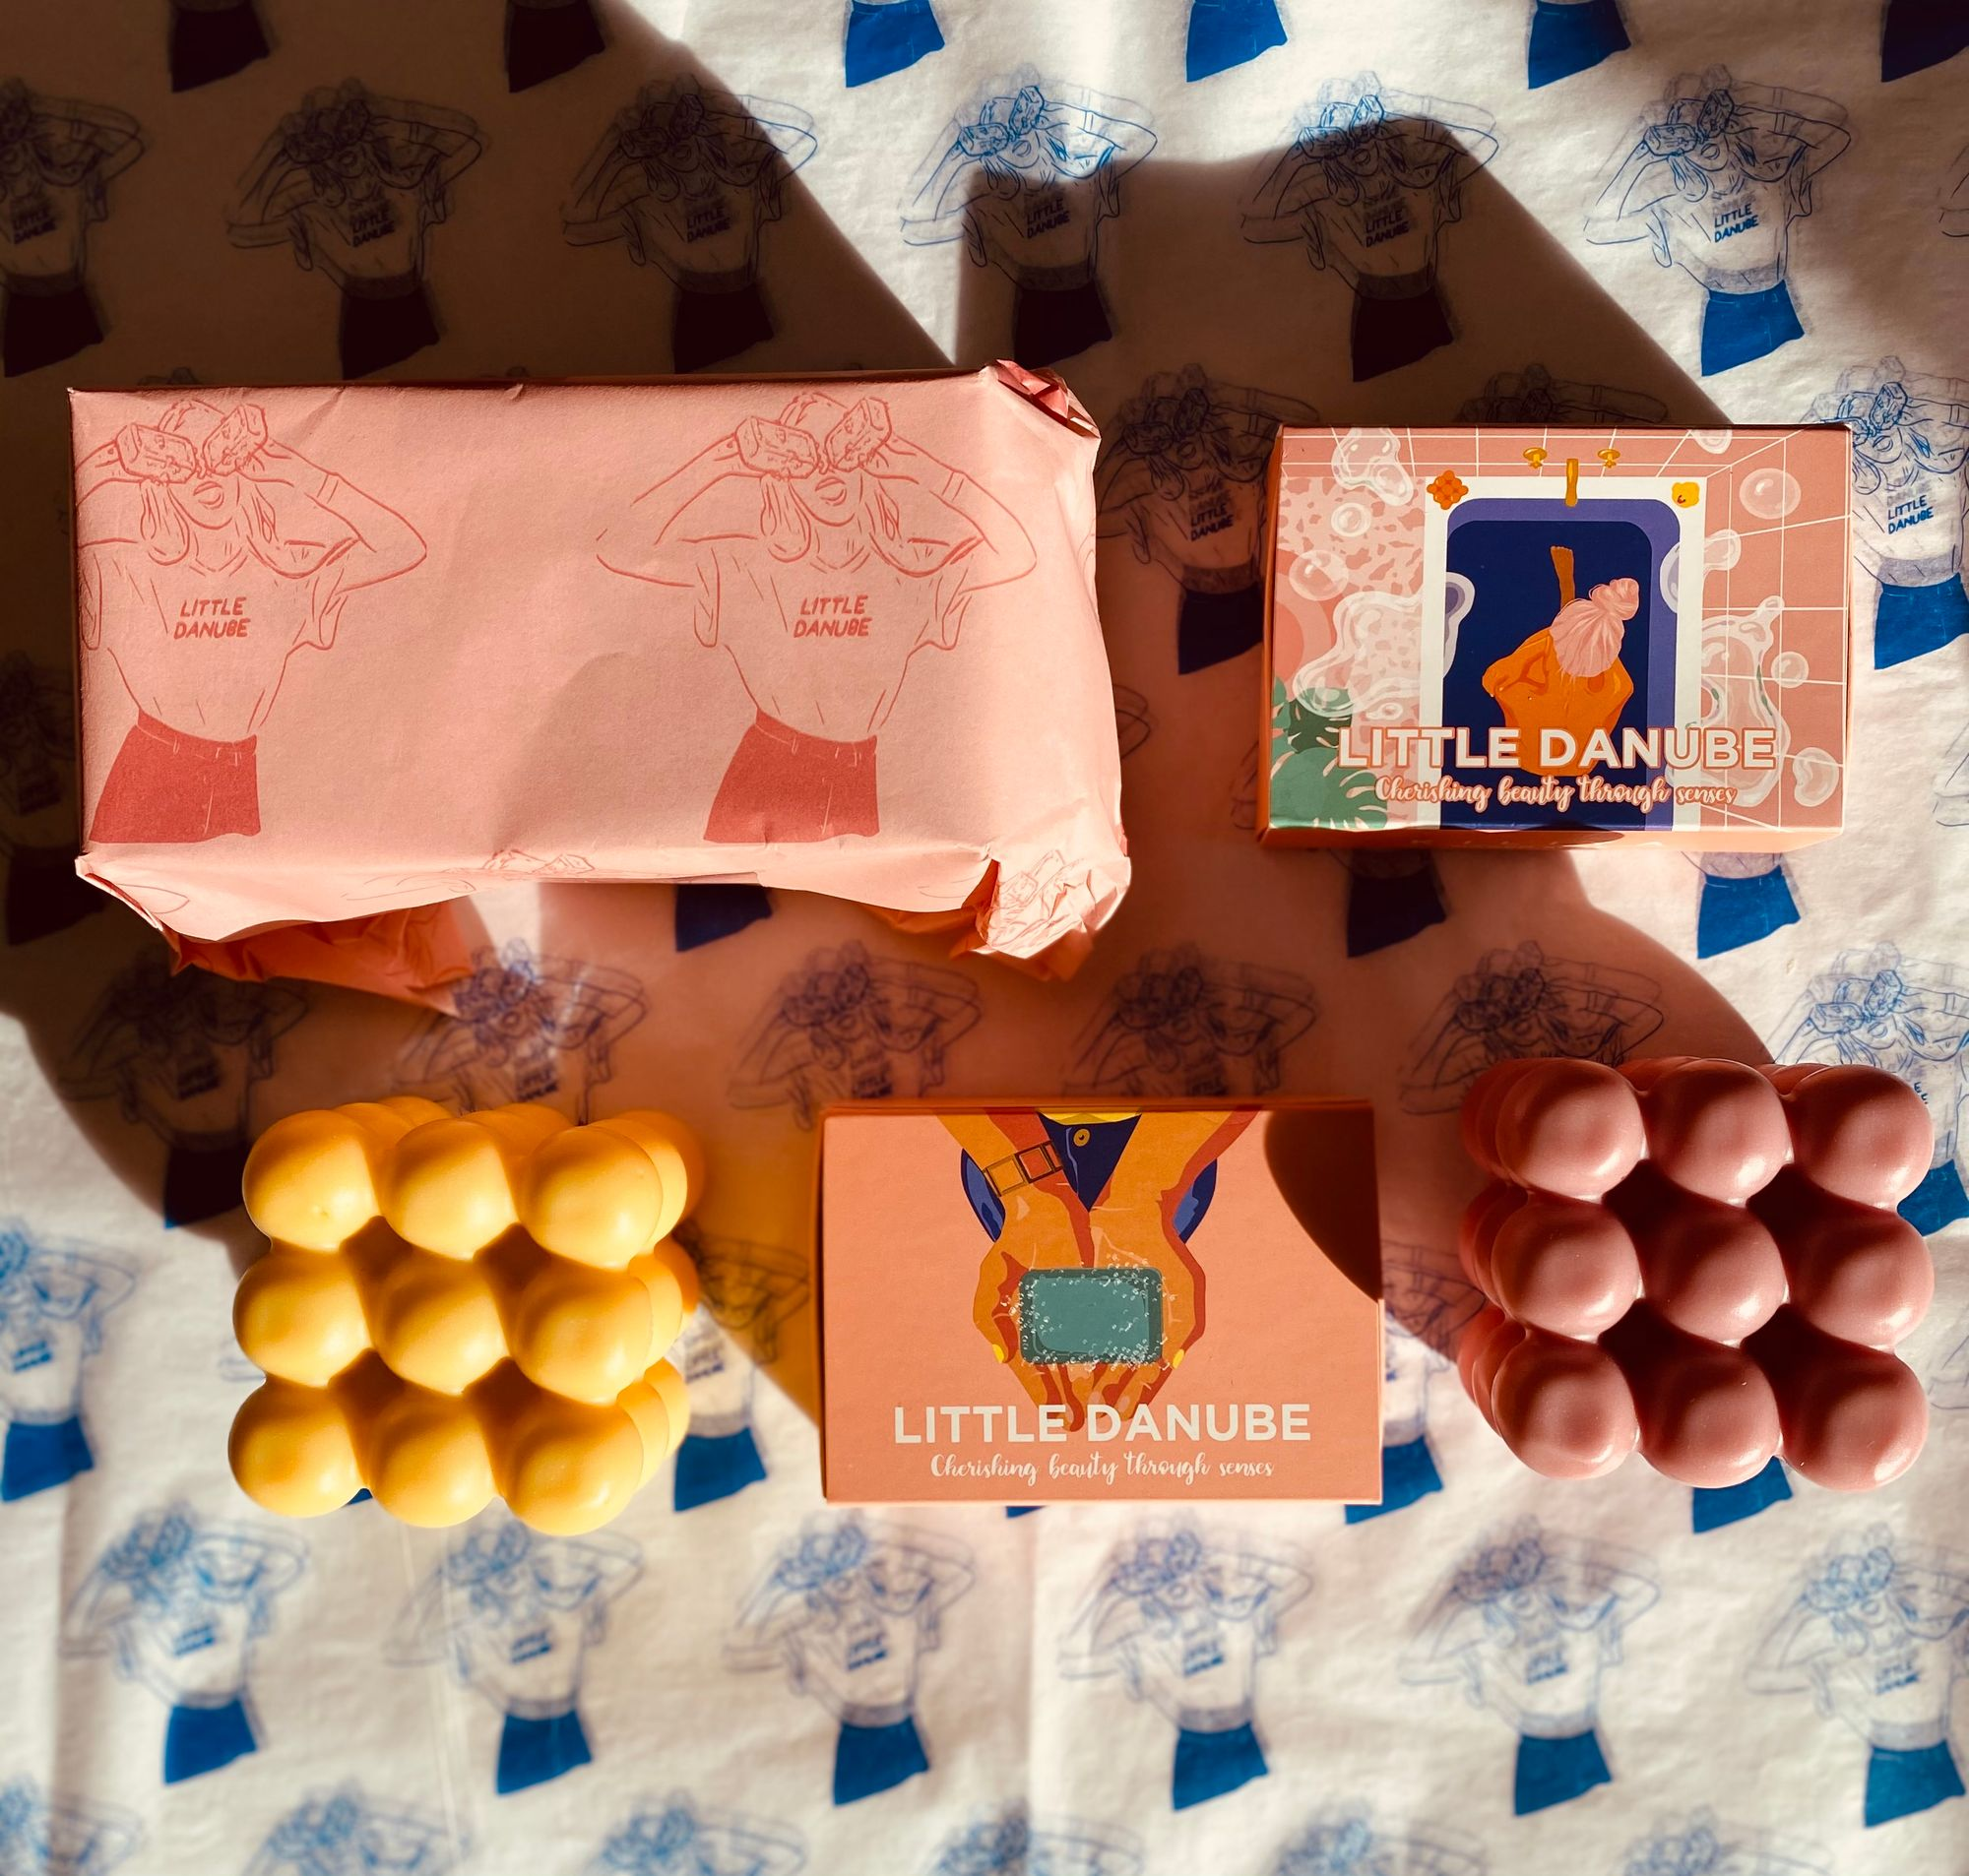 Little Danube: Beautiful Vegan Soap Bars that Heighten Your Senses